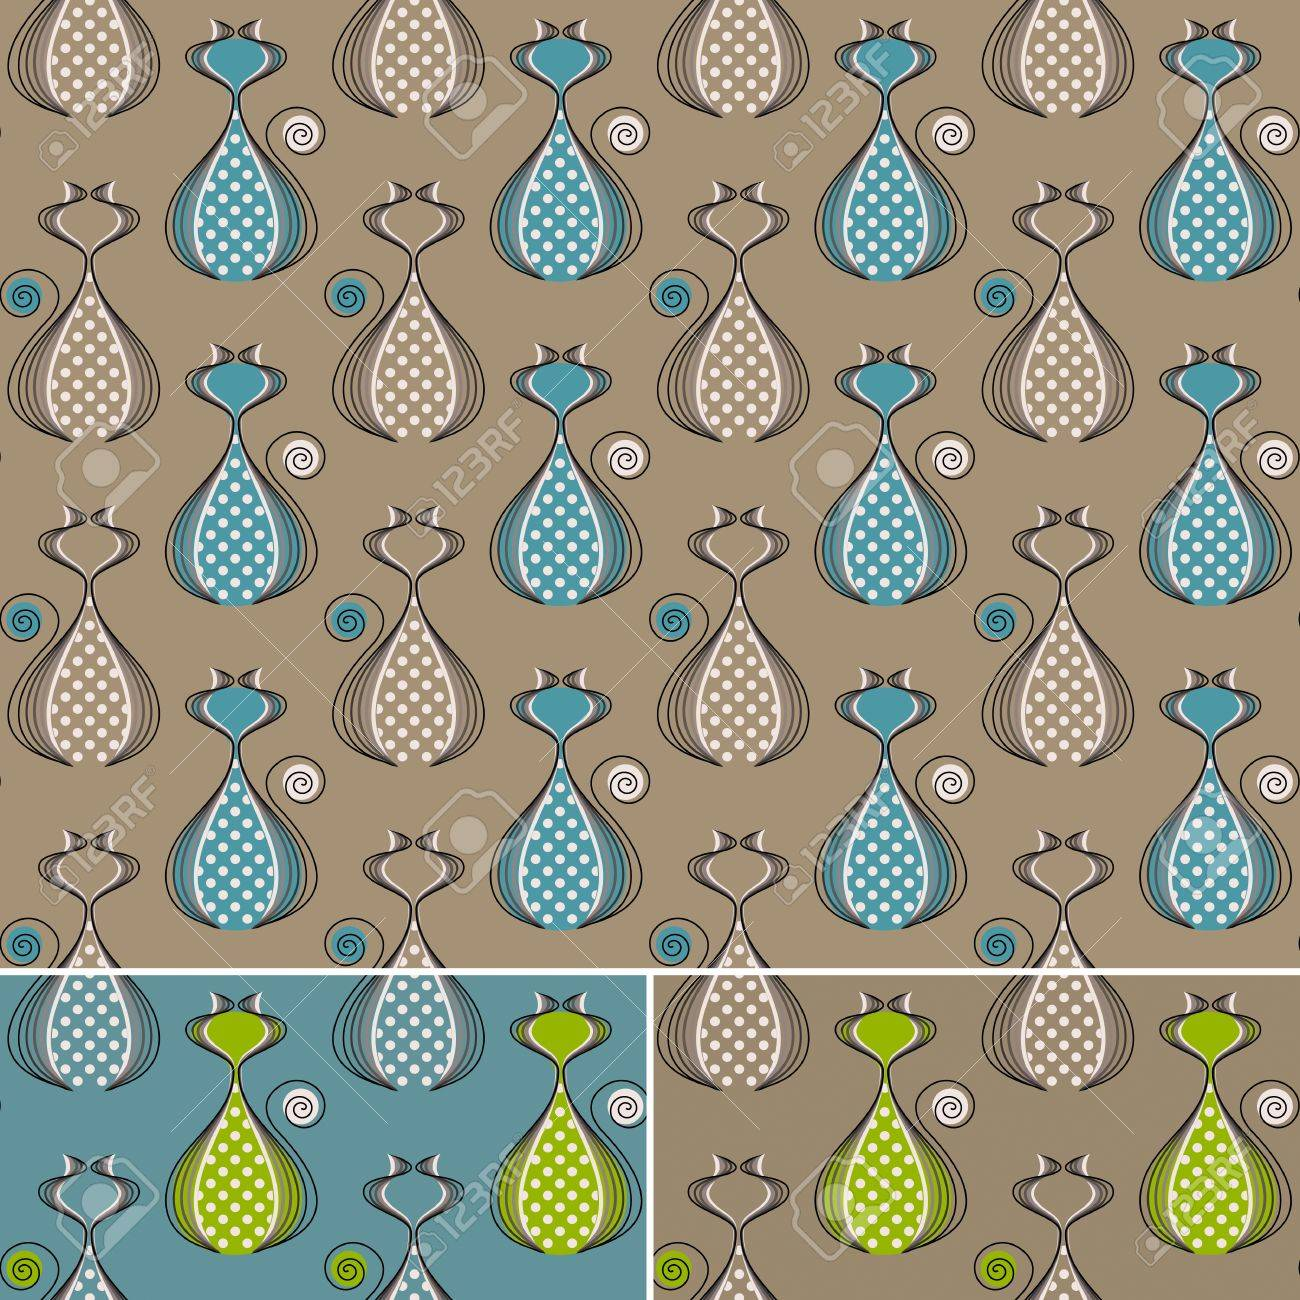 Seamless Pattern With Stylized Cats Abstract Background In Three Color Combinations No Gradients